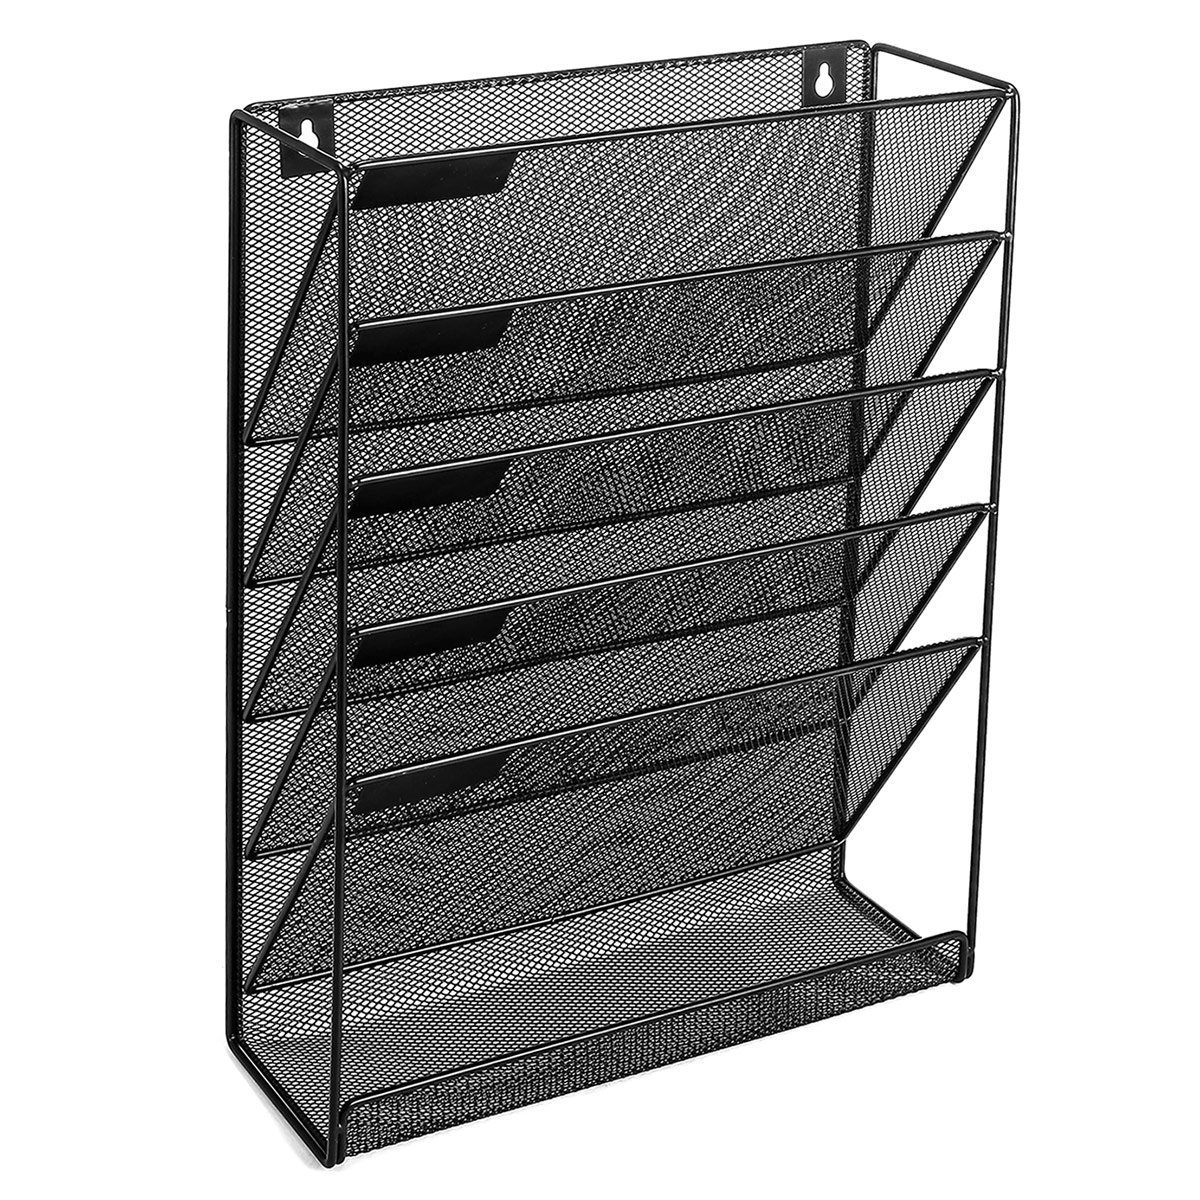 Wall File Organizer; 5 Tier Black Mesh Metal Wall Shelf/Organizer; Includes 6 x Shelf Label Stickers & Wall Screws/Anchors!; Ideal for Home or Office